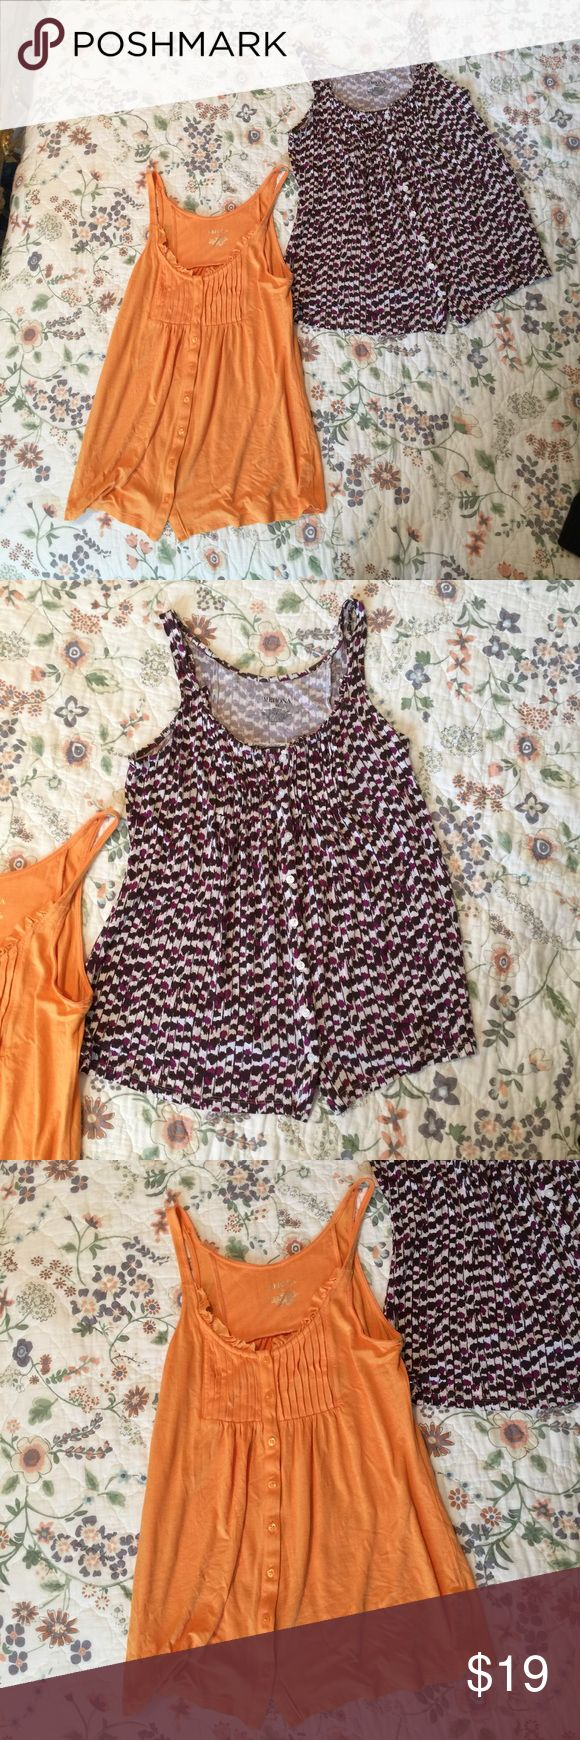 tank bundle ▪️Item condition: Good condition. Buttons down from. Very forgiving. Great for postpartum and nursing mamas too despite being regular sized. Size best for xs-m.  ▪️Item color: orange, purple white & brown  ▪️Item Blemishes: None, has Raw hem neckline.   ▪️How I cared for the the item:  percel pro clean wash, snuggle softener, hung to dry.  ❌Please note: My prices are reasonably low, and I will not pay for your shipping❌  T ags: tanks, target, nursing friendly, babydoll tanks…